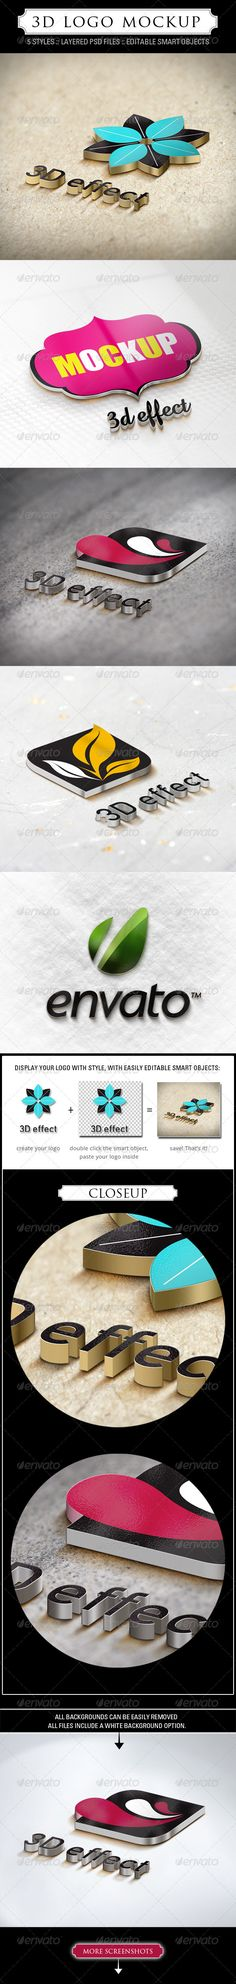 3D Logo Mockup - 5 Styles - GraphicRiver Item for Sale